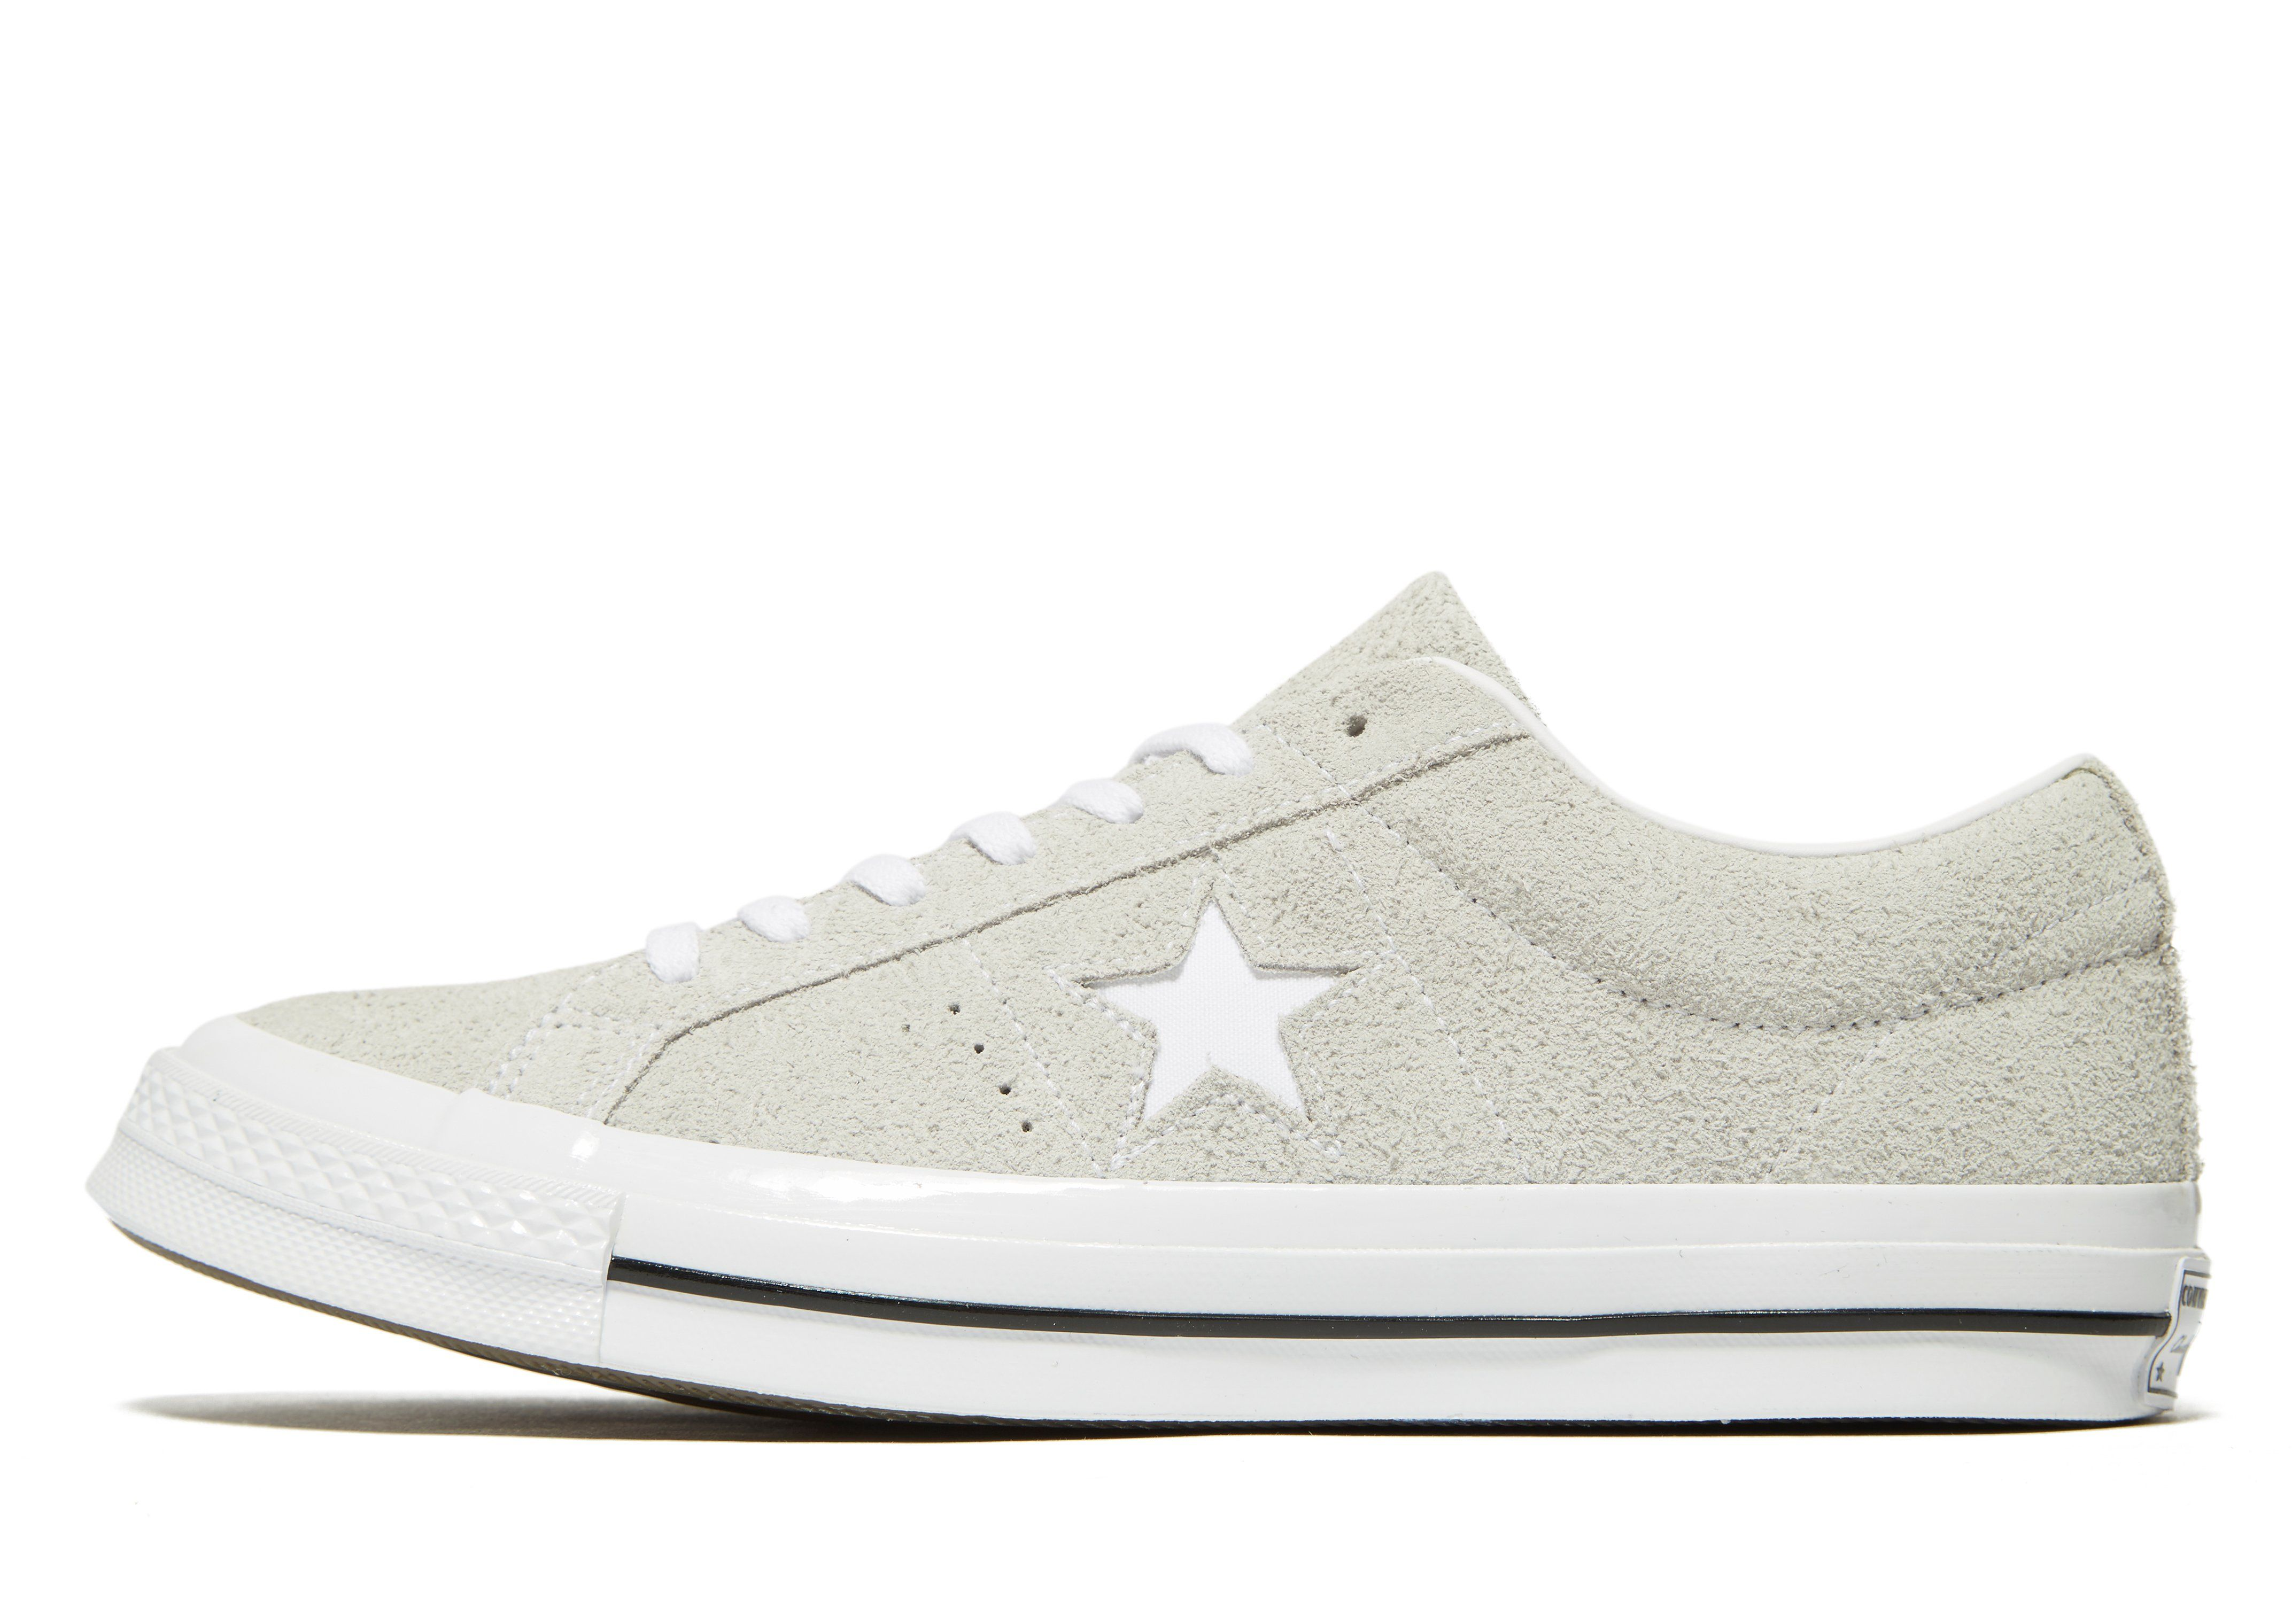 Chaussures Converse One Star bleues Fashion femme